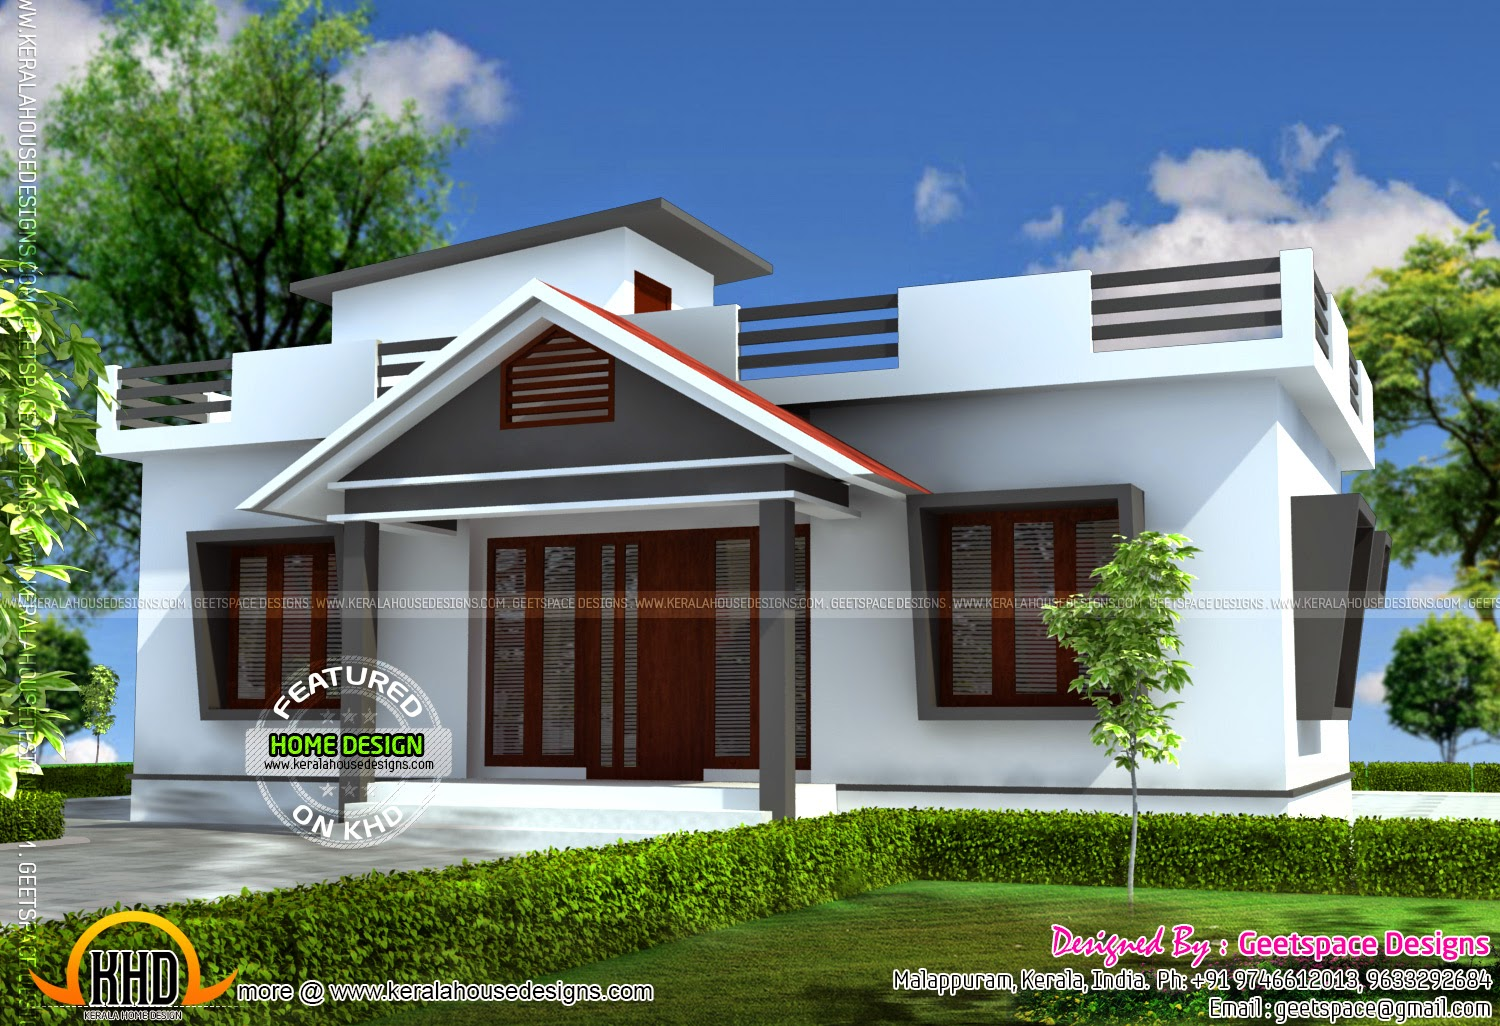 Small house in 903 square feet kerala home design and floor plans House plans and designs